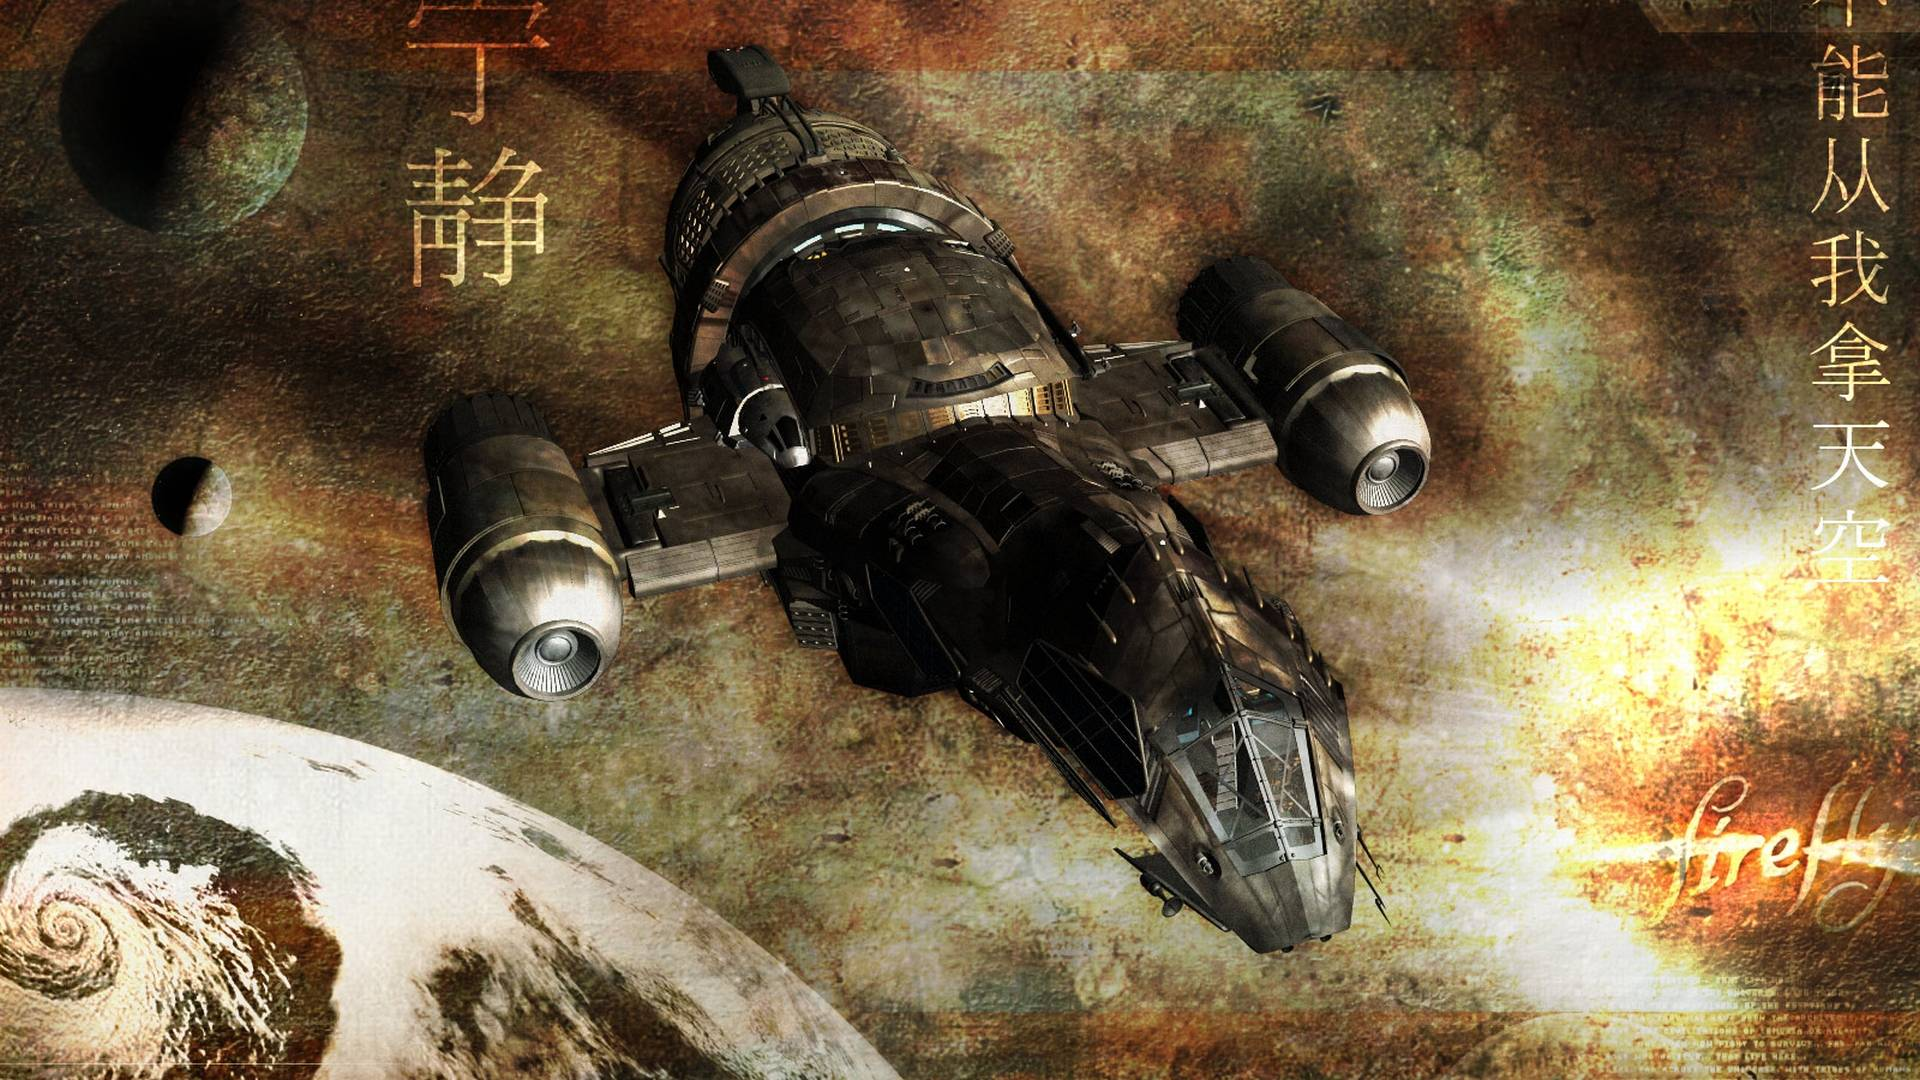 Firefly Wallpaper 10163 Wallpapers | hdesktopict.